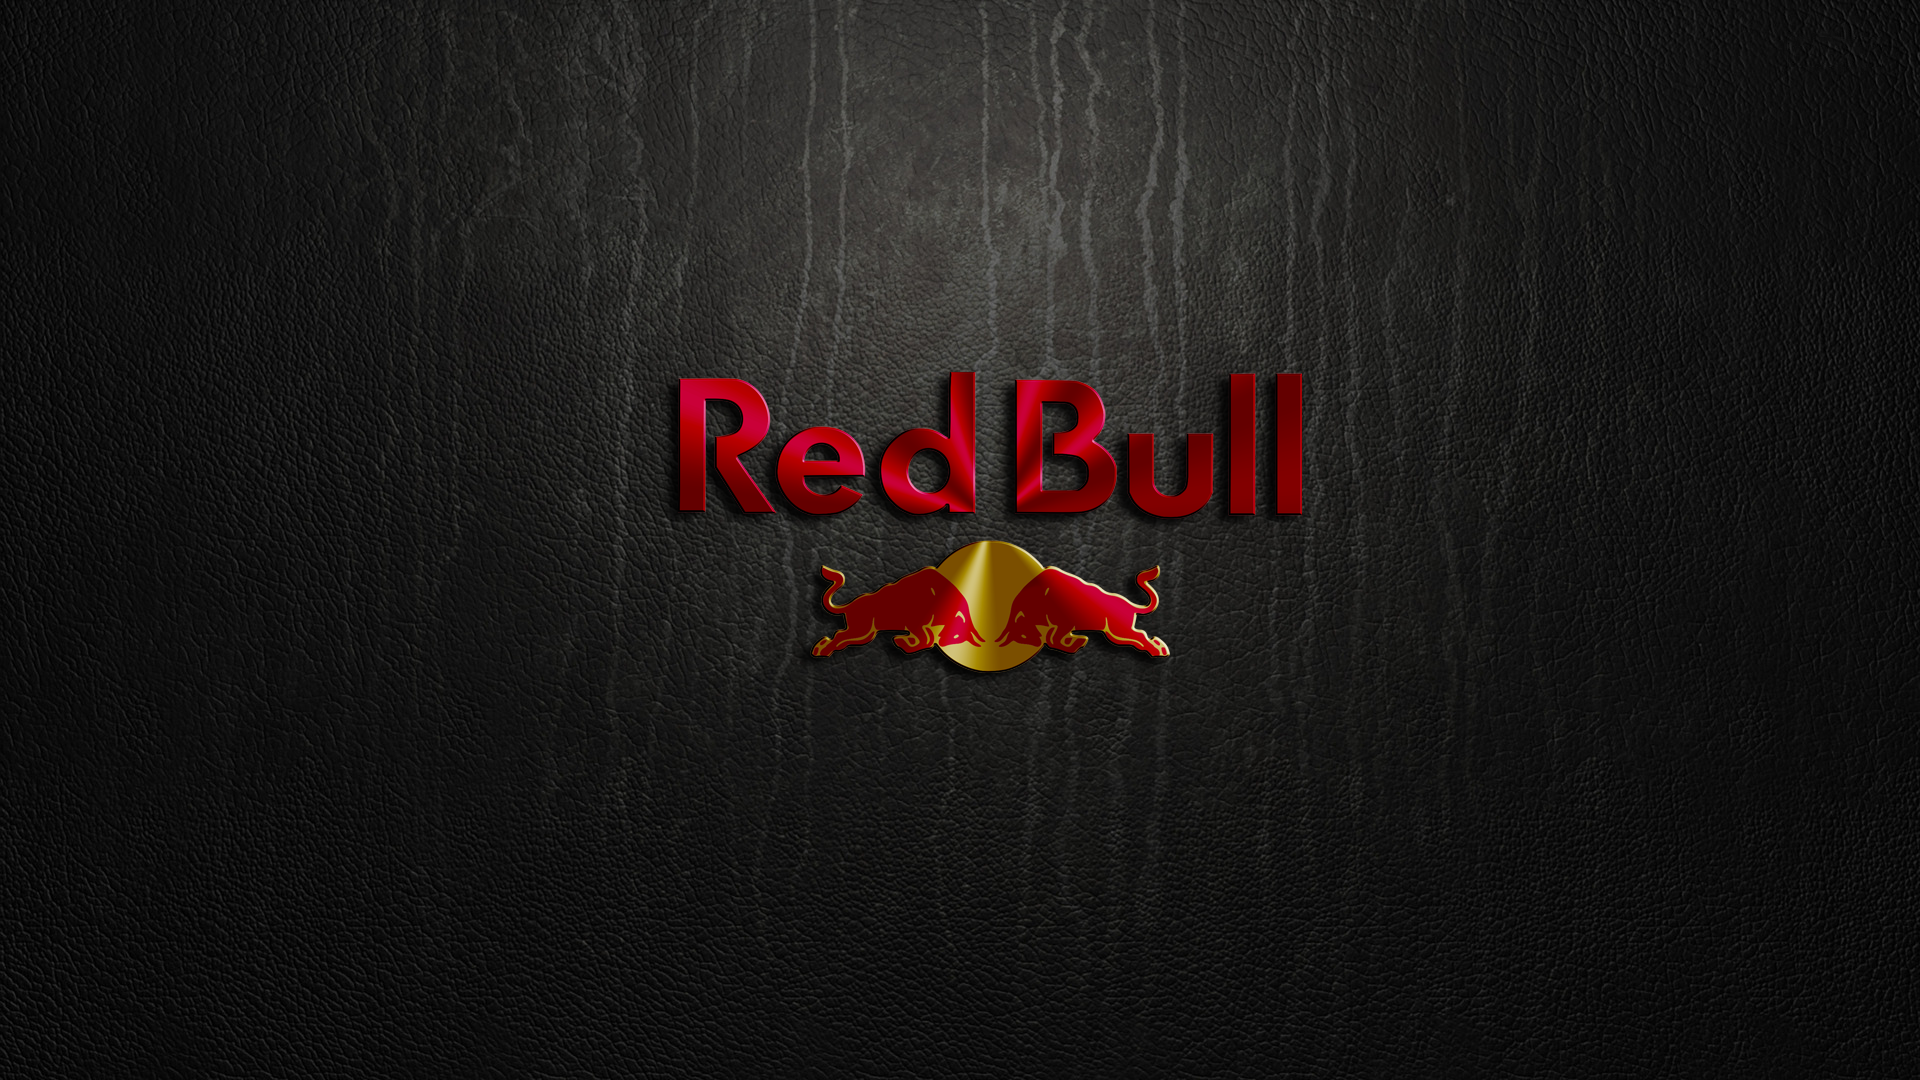 Red Bull Logo Red Bull Logo Leather Texture